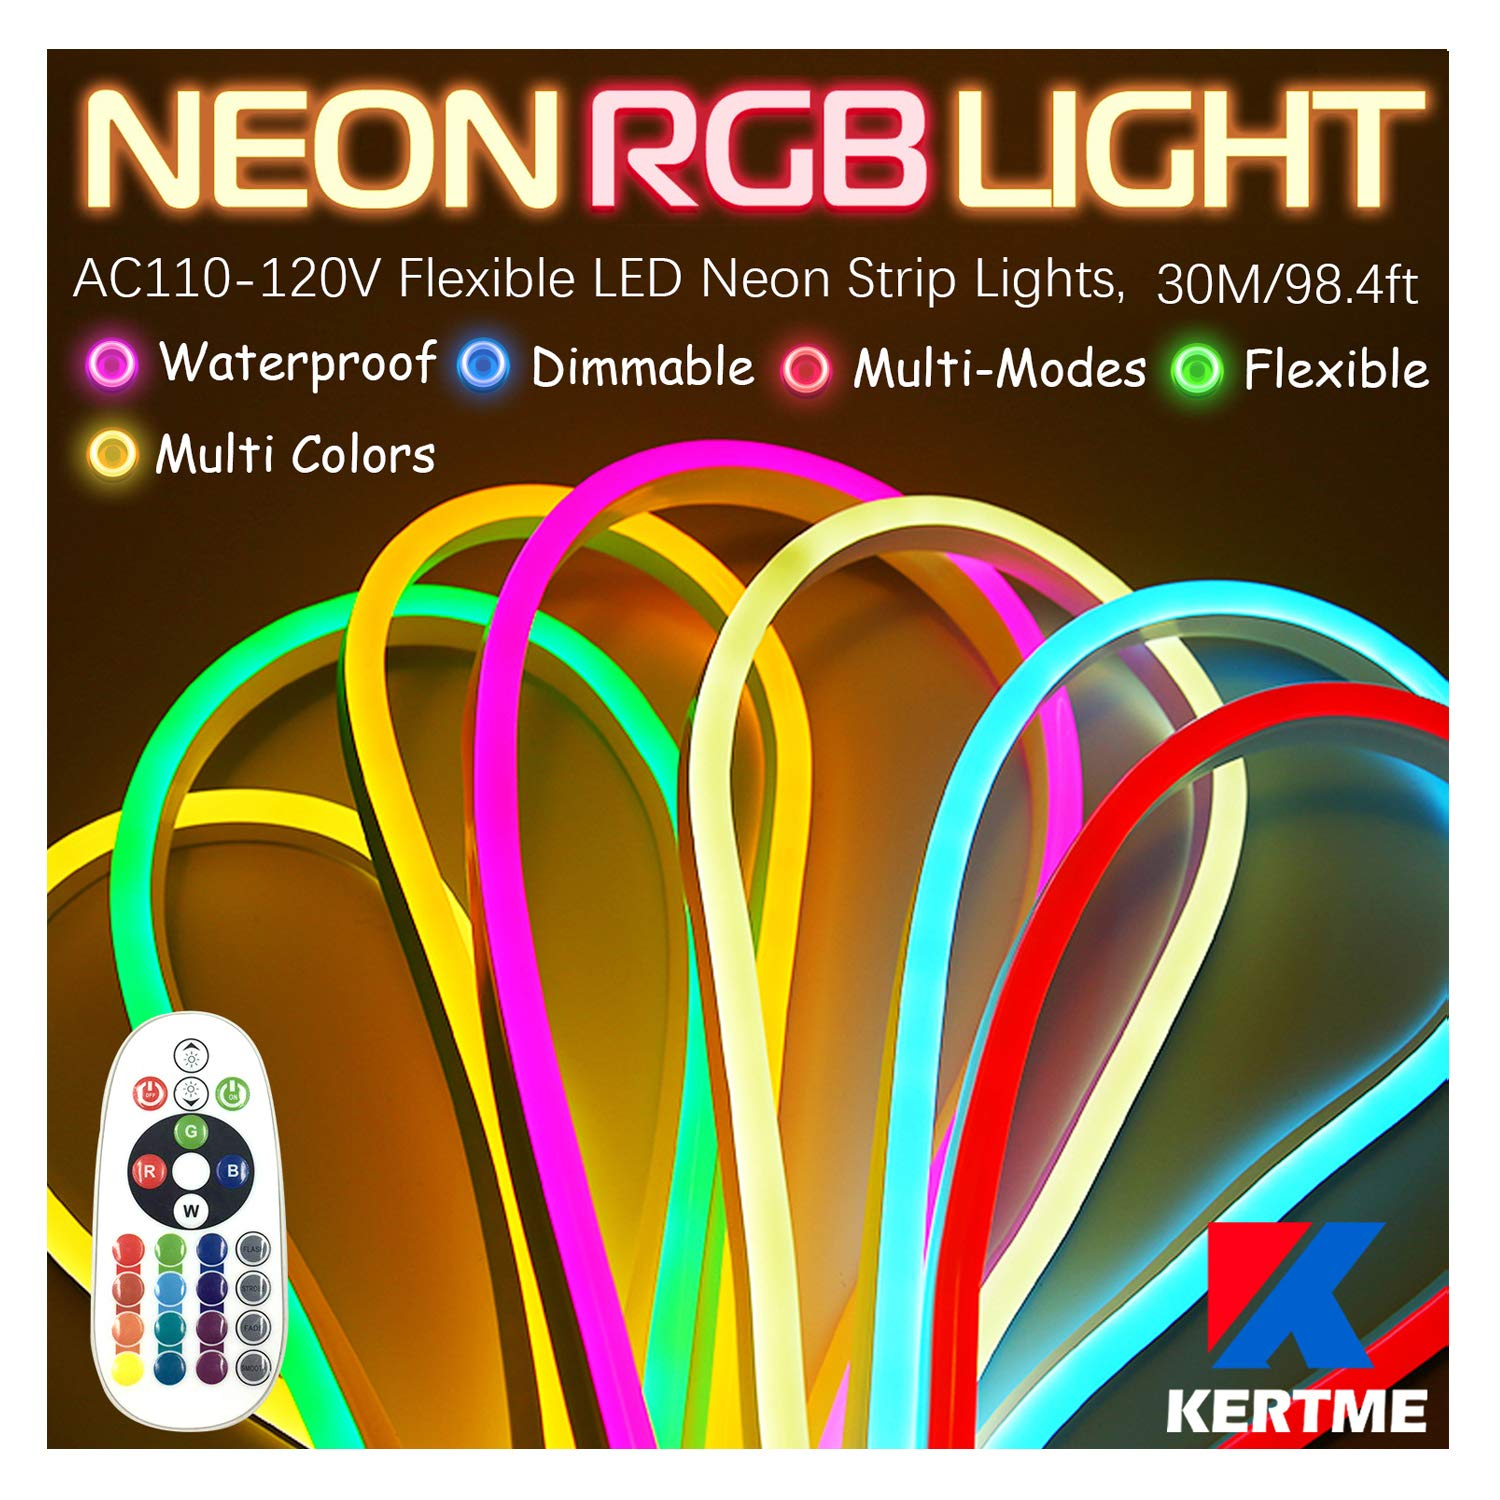 KERTME Neon Led Type AC 110-120V LED NEON Light Strip, Flexible/Waterproof/Dimmable/Multi-Colors/Multi-Modes LED Rope Light + 24 Keys Remote for Home/Garden/Building Decoration (98.4ft/30m, RGB)